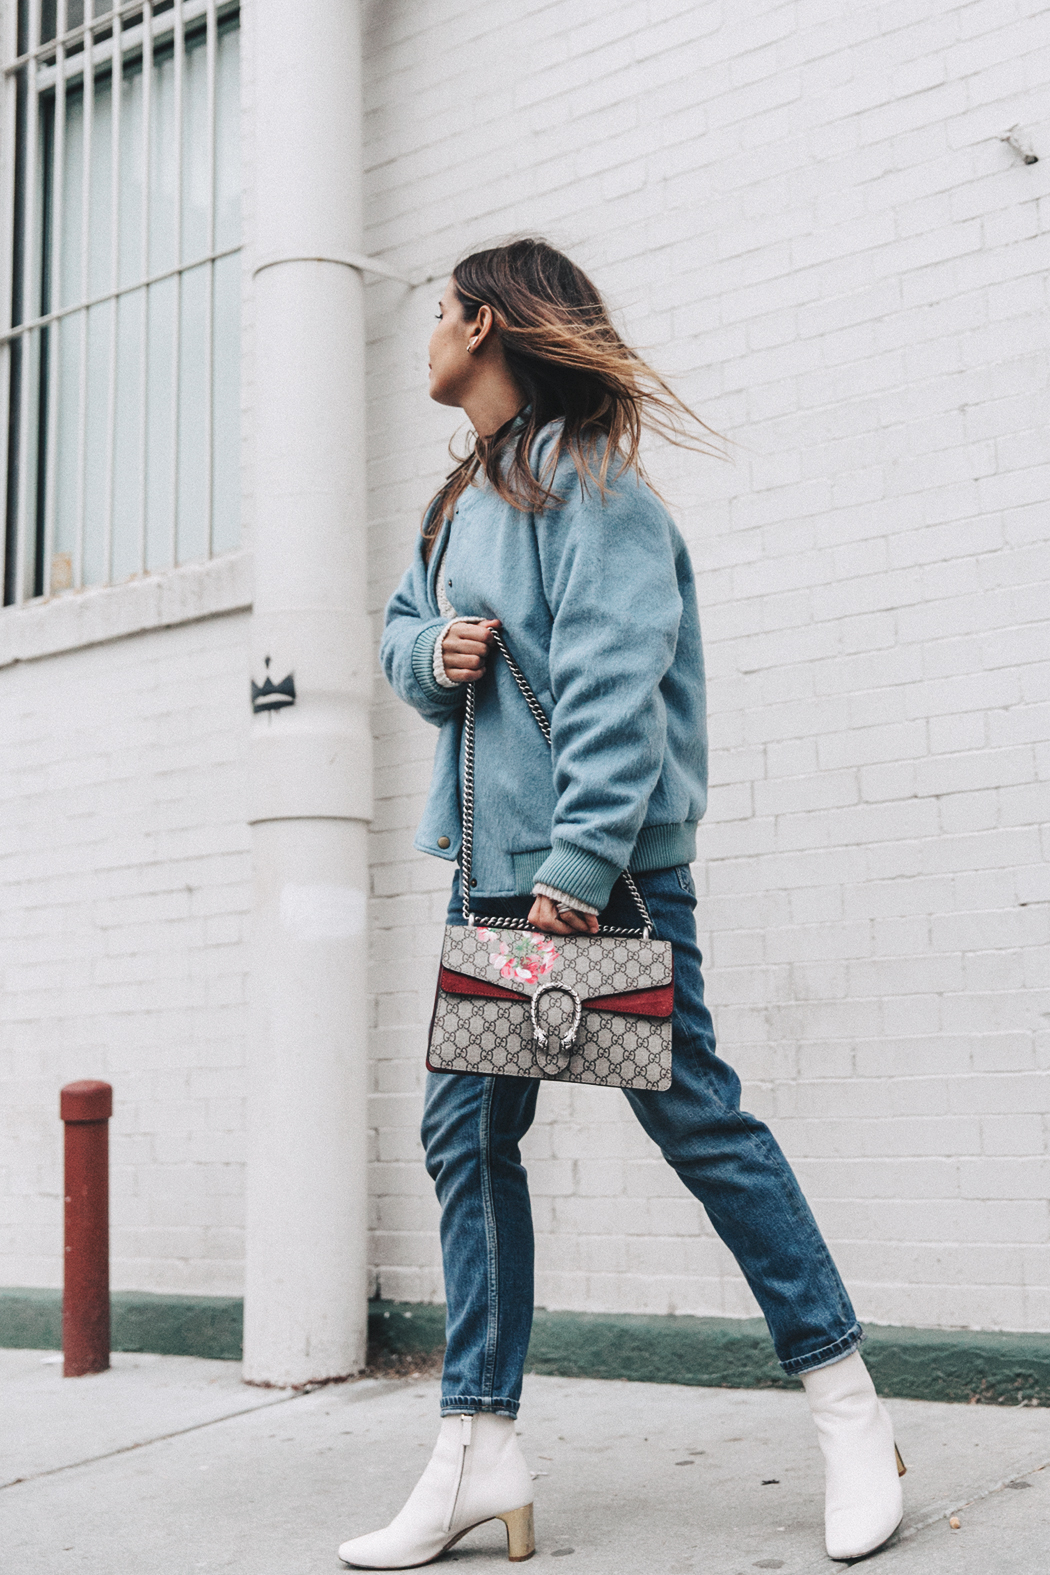 Blue_Bomber-Ganni-Topshop_Jeans-White_Boots-Gucci_Bag-Outfit-NYFW-New_York-Street_Style-16